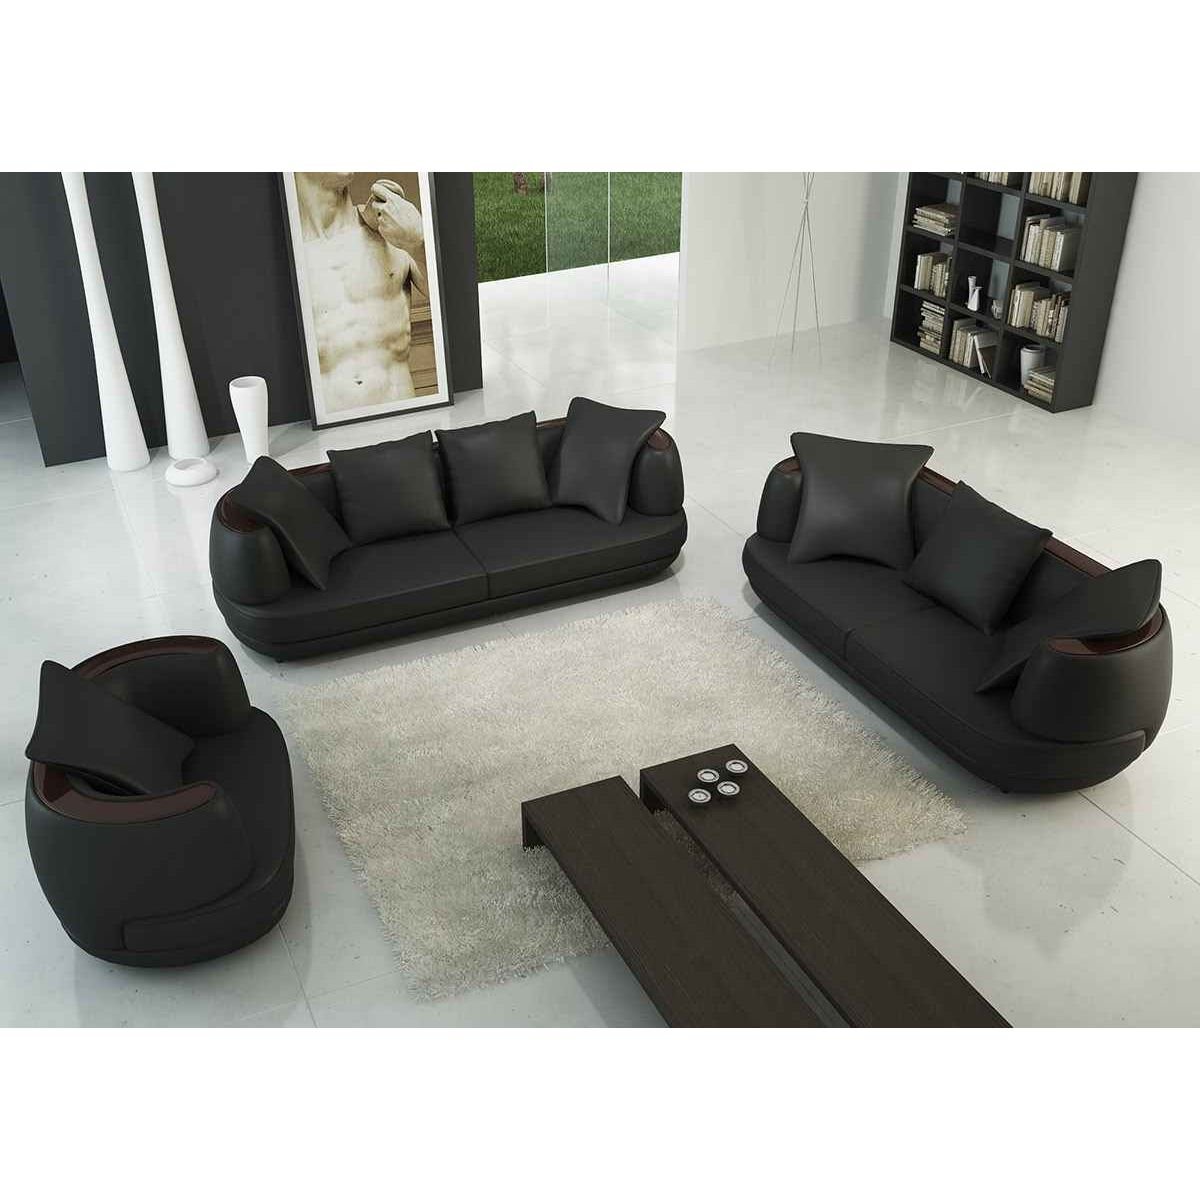 Deco in paris ensemble canape 3 2 1 places noir en cuir for Canape cuir paris